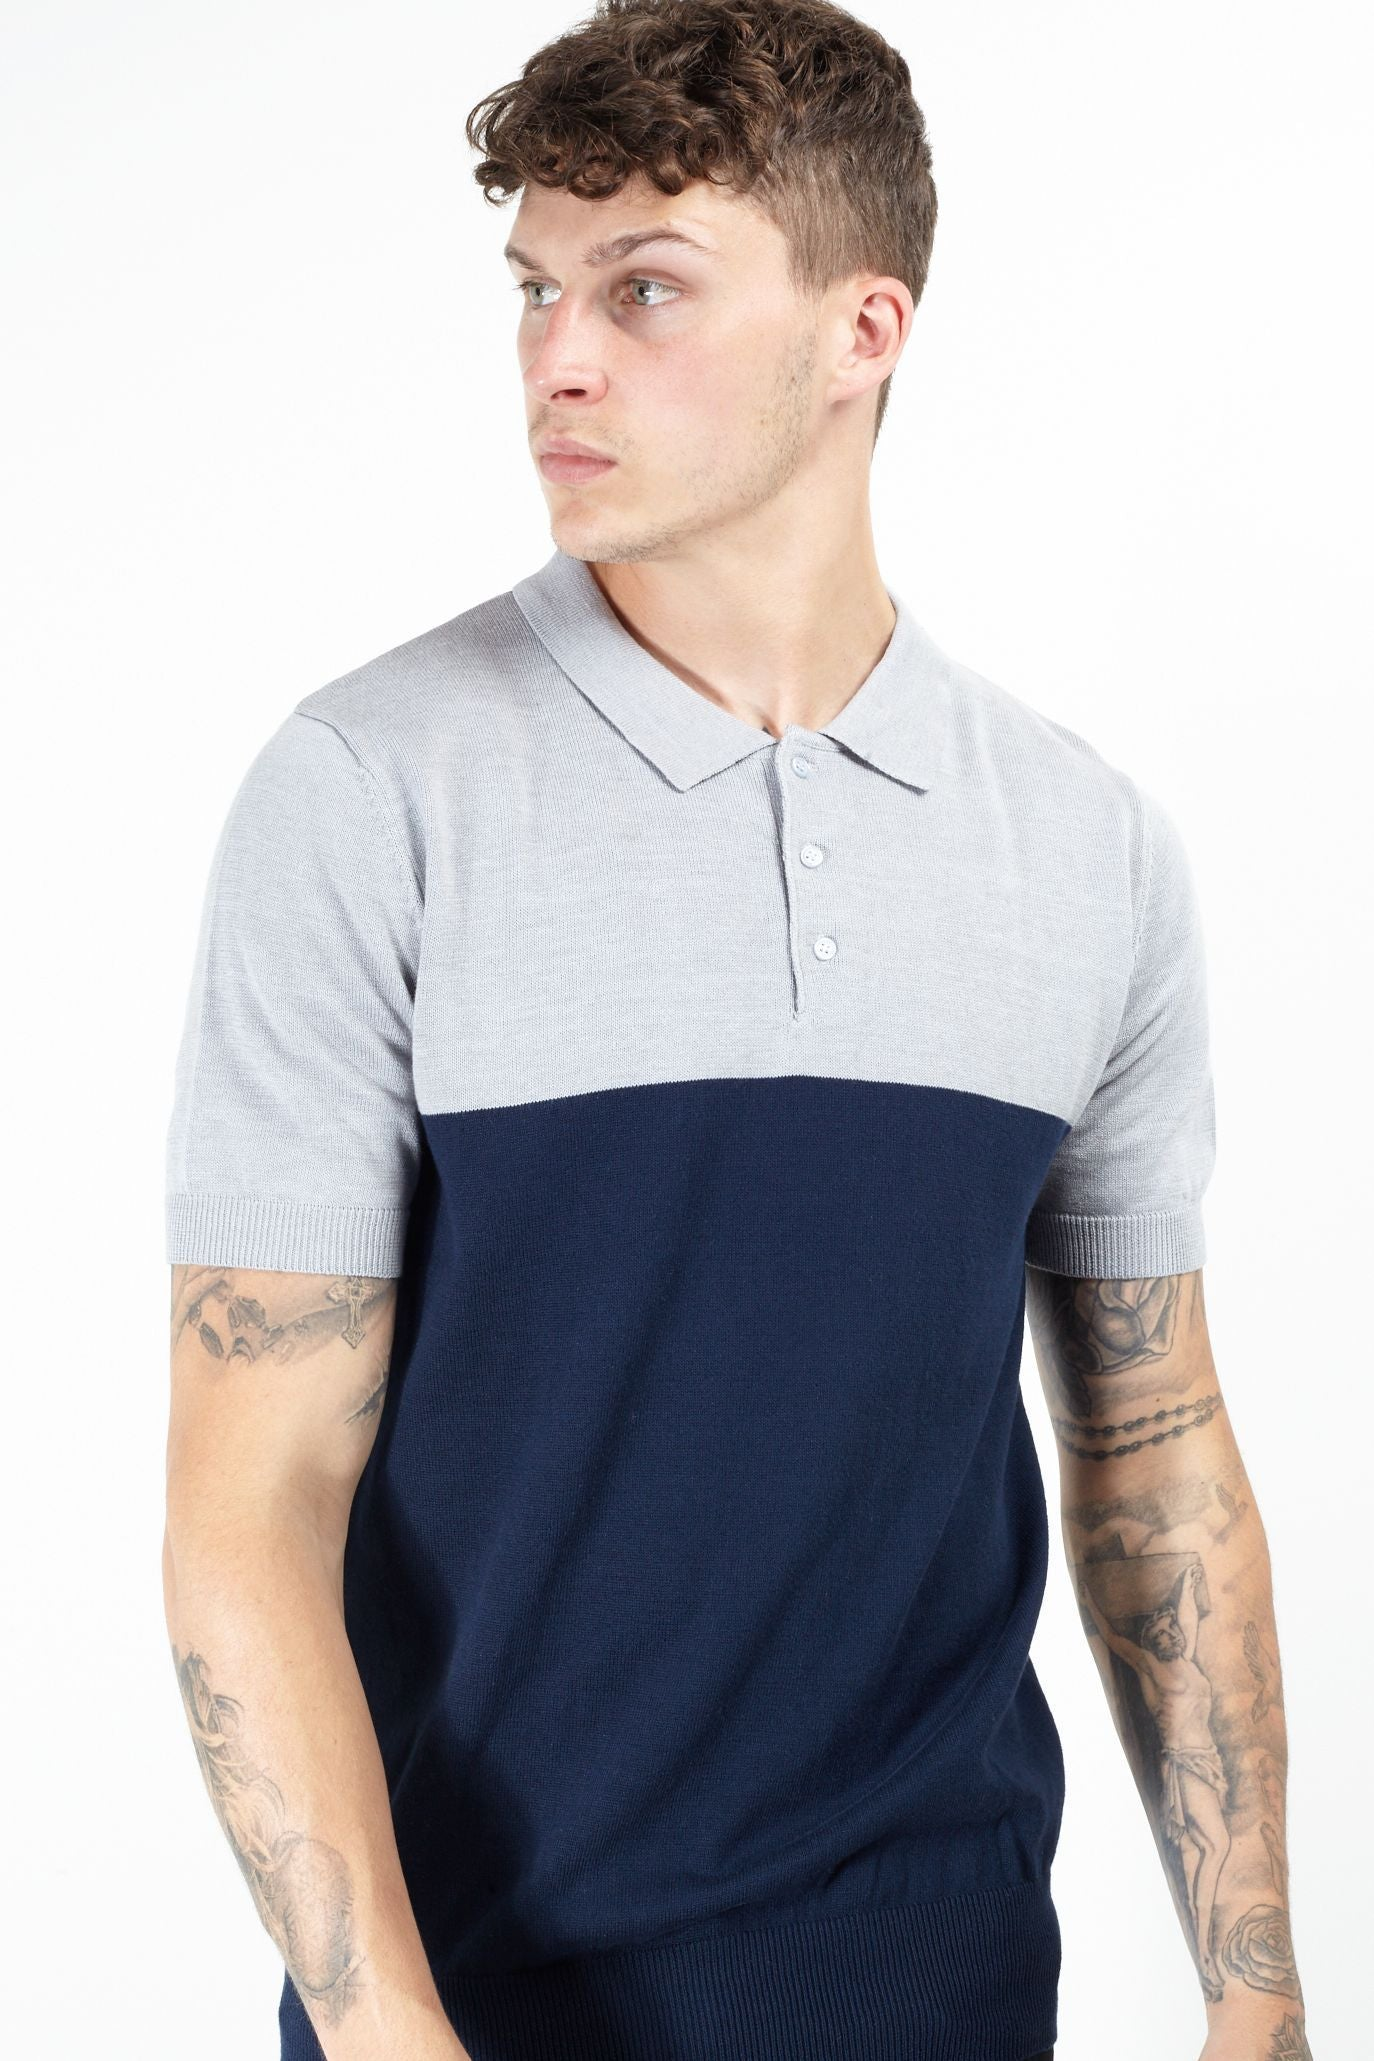 Contrast Knitted Polo Short Sleeve Grey Navy